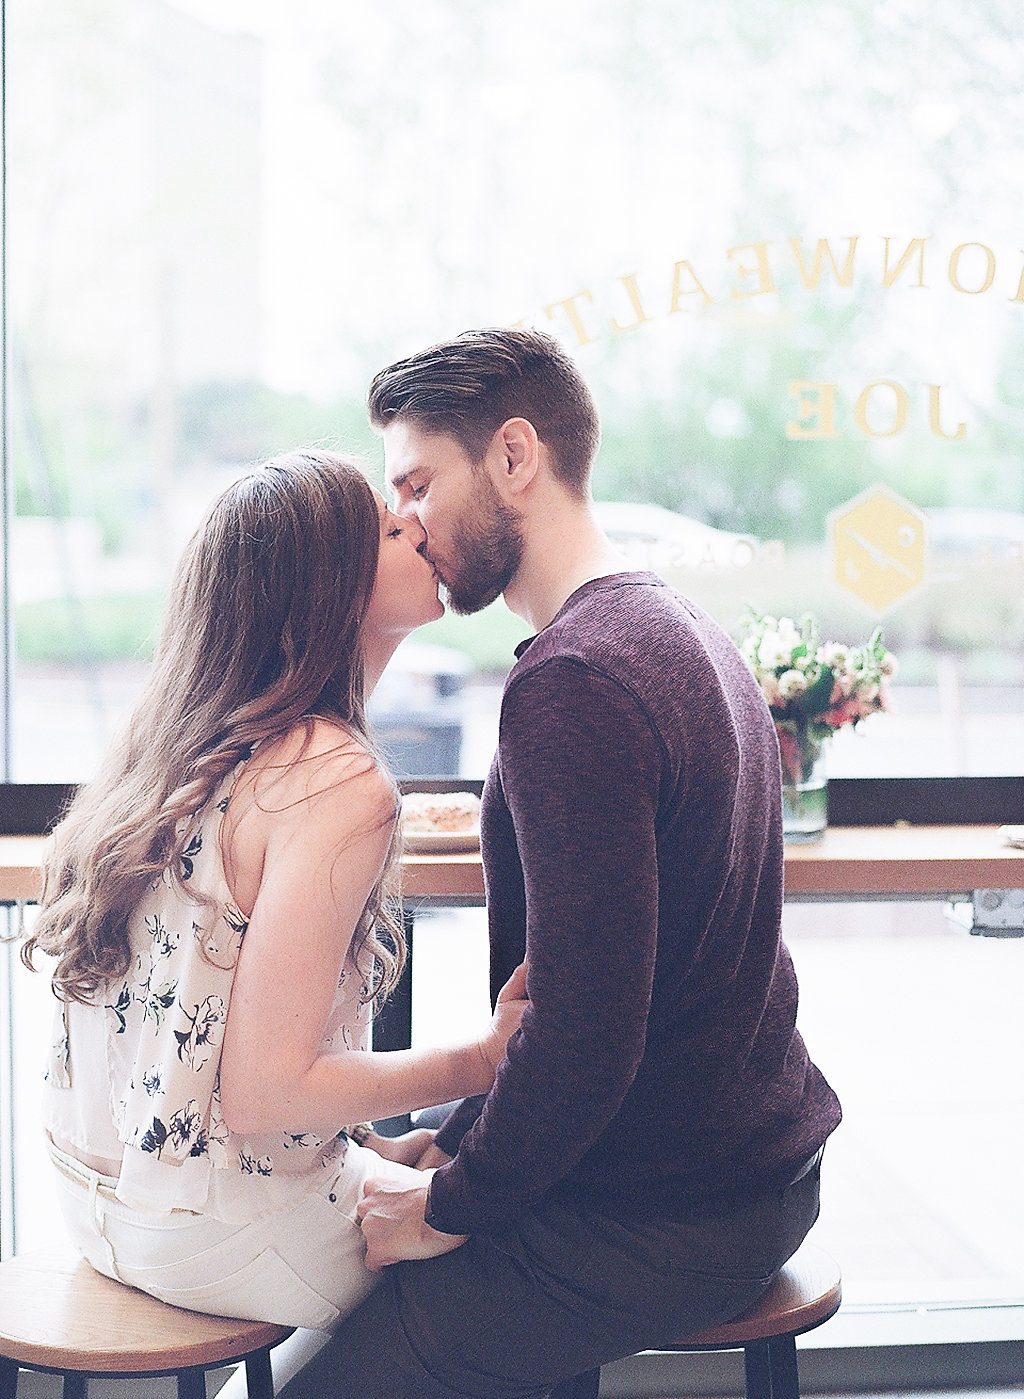 Tidal Basin Engagement Photography | Andrea Rodway Photography